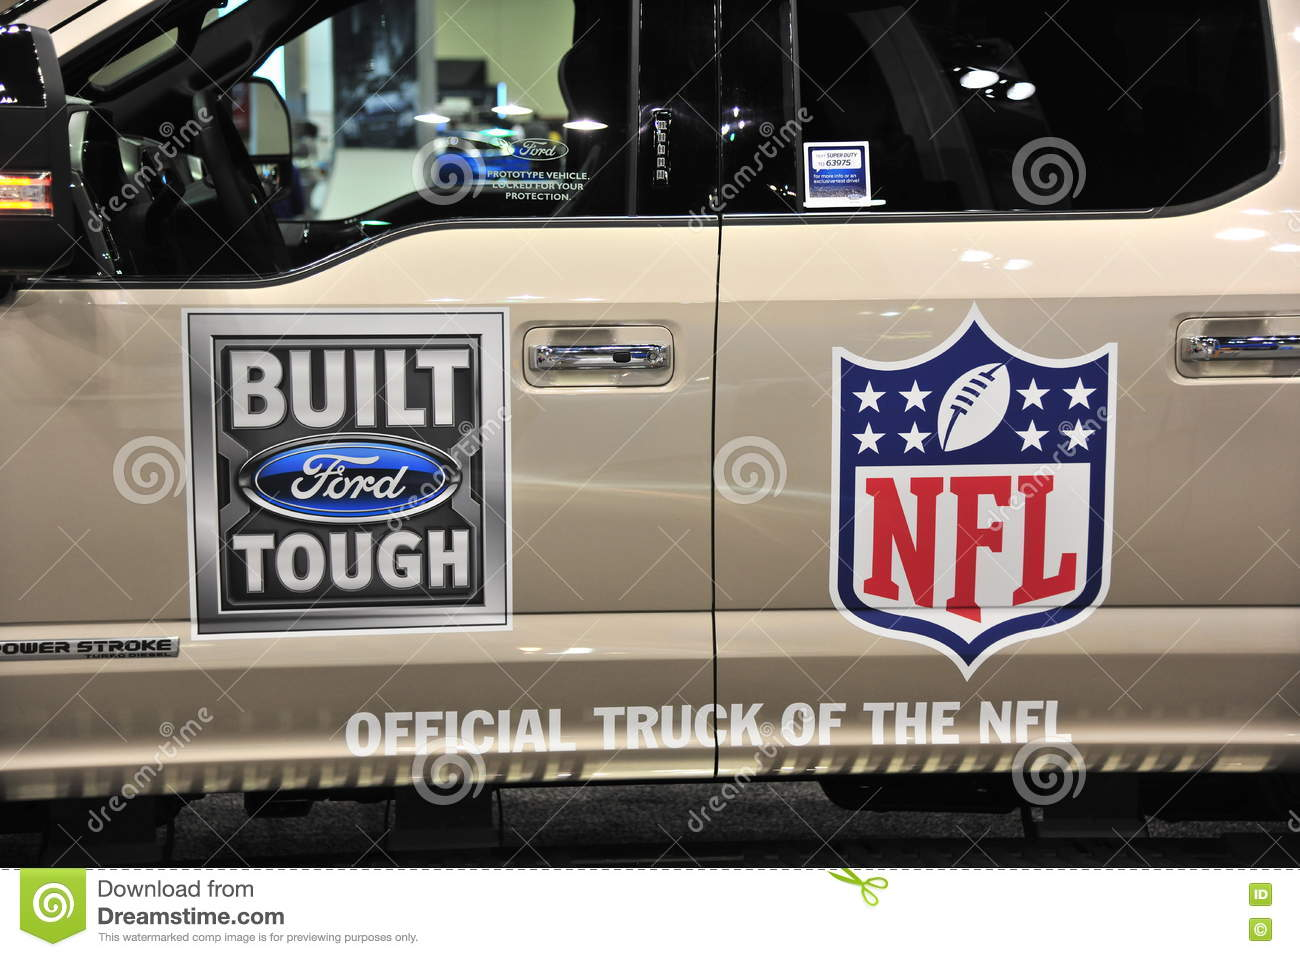 Ford Official Truck do NFL